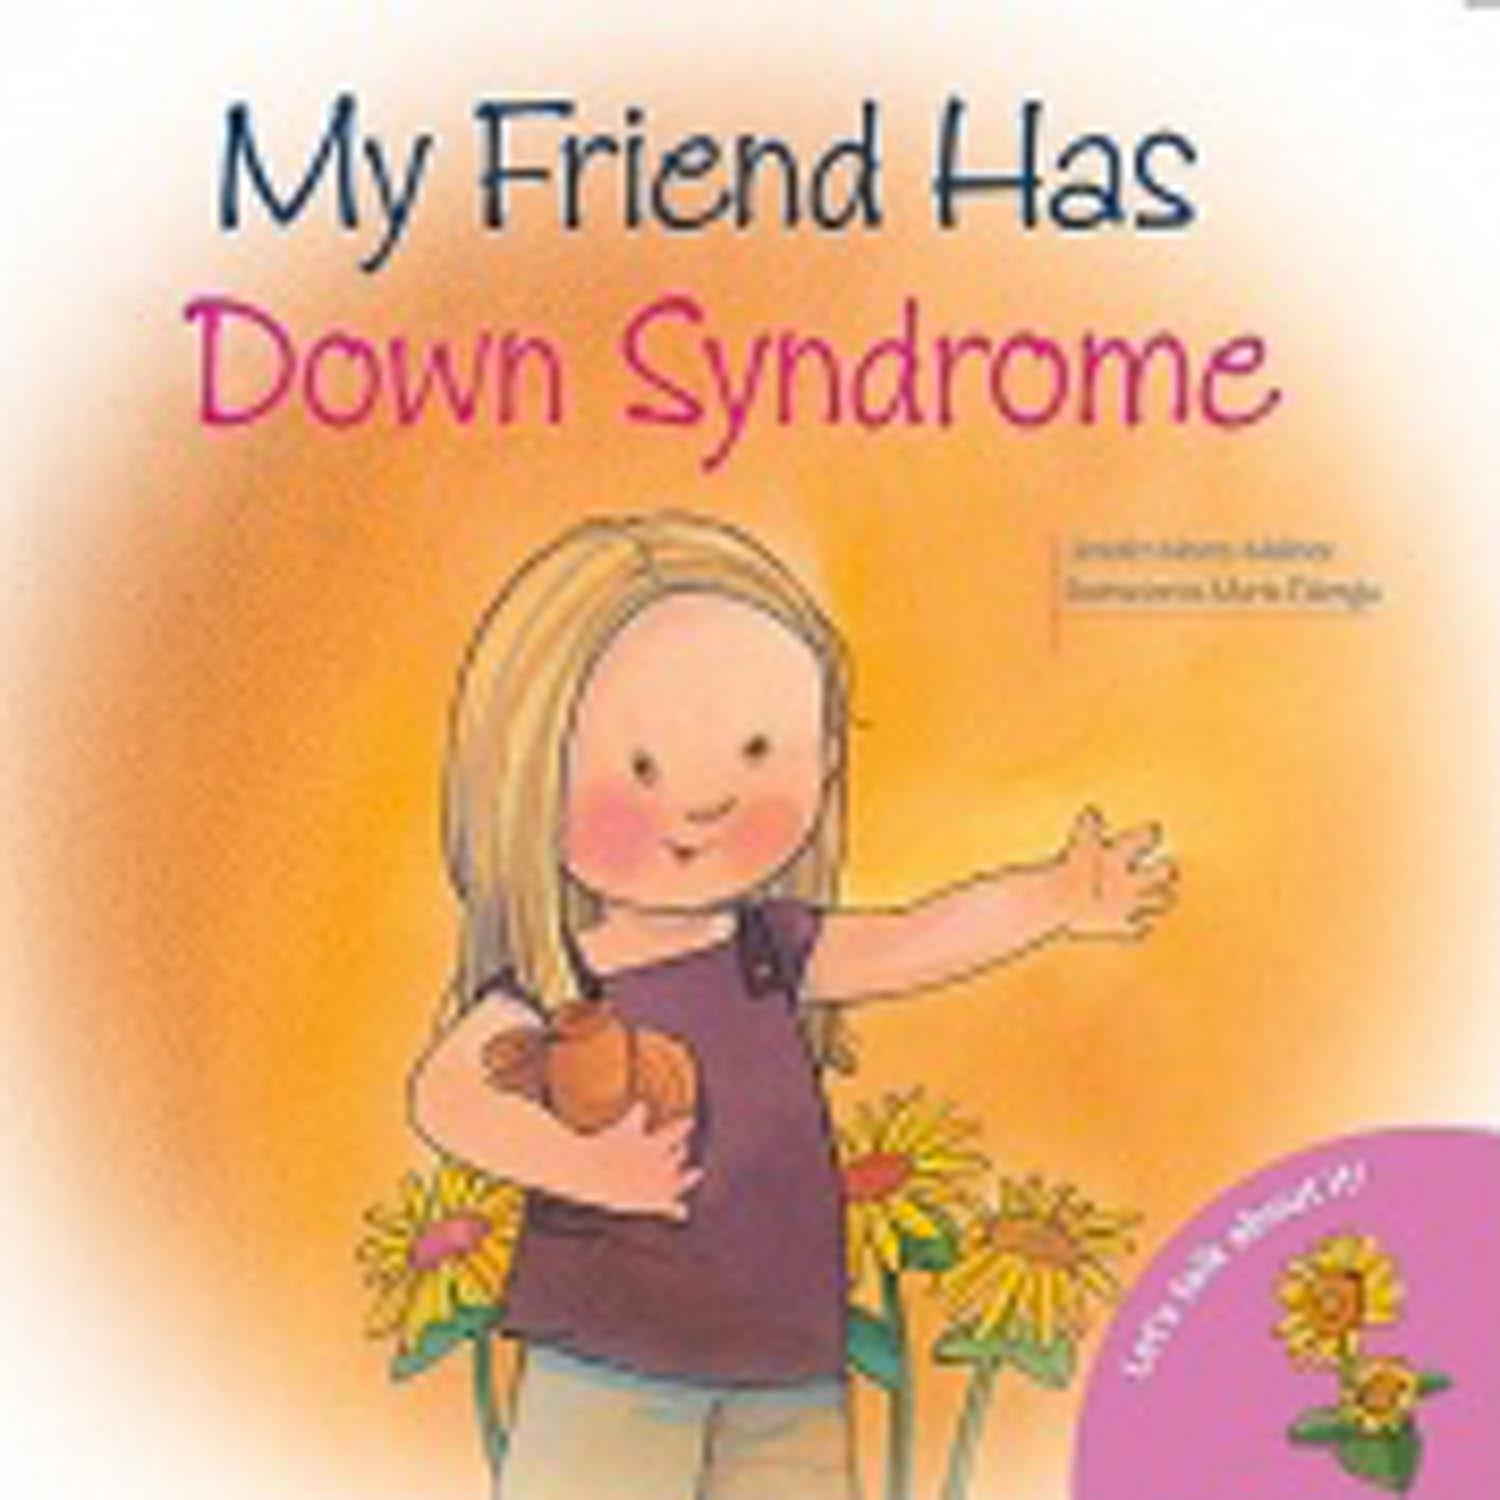 My Friend has Down Syndrome Image